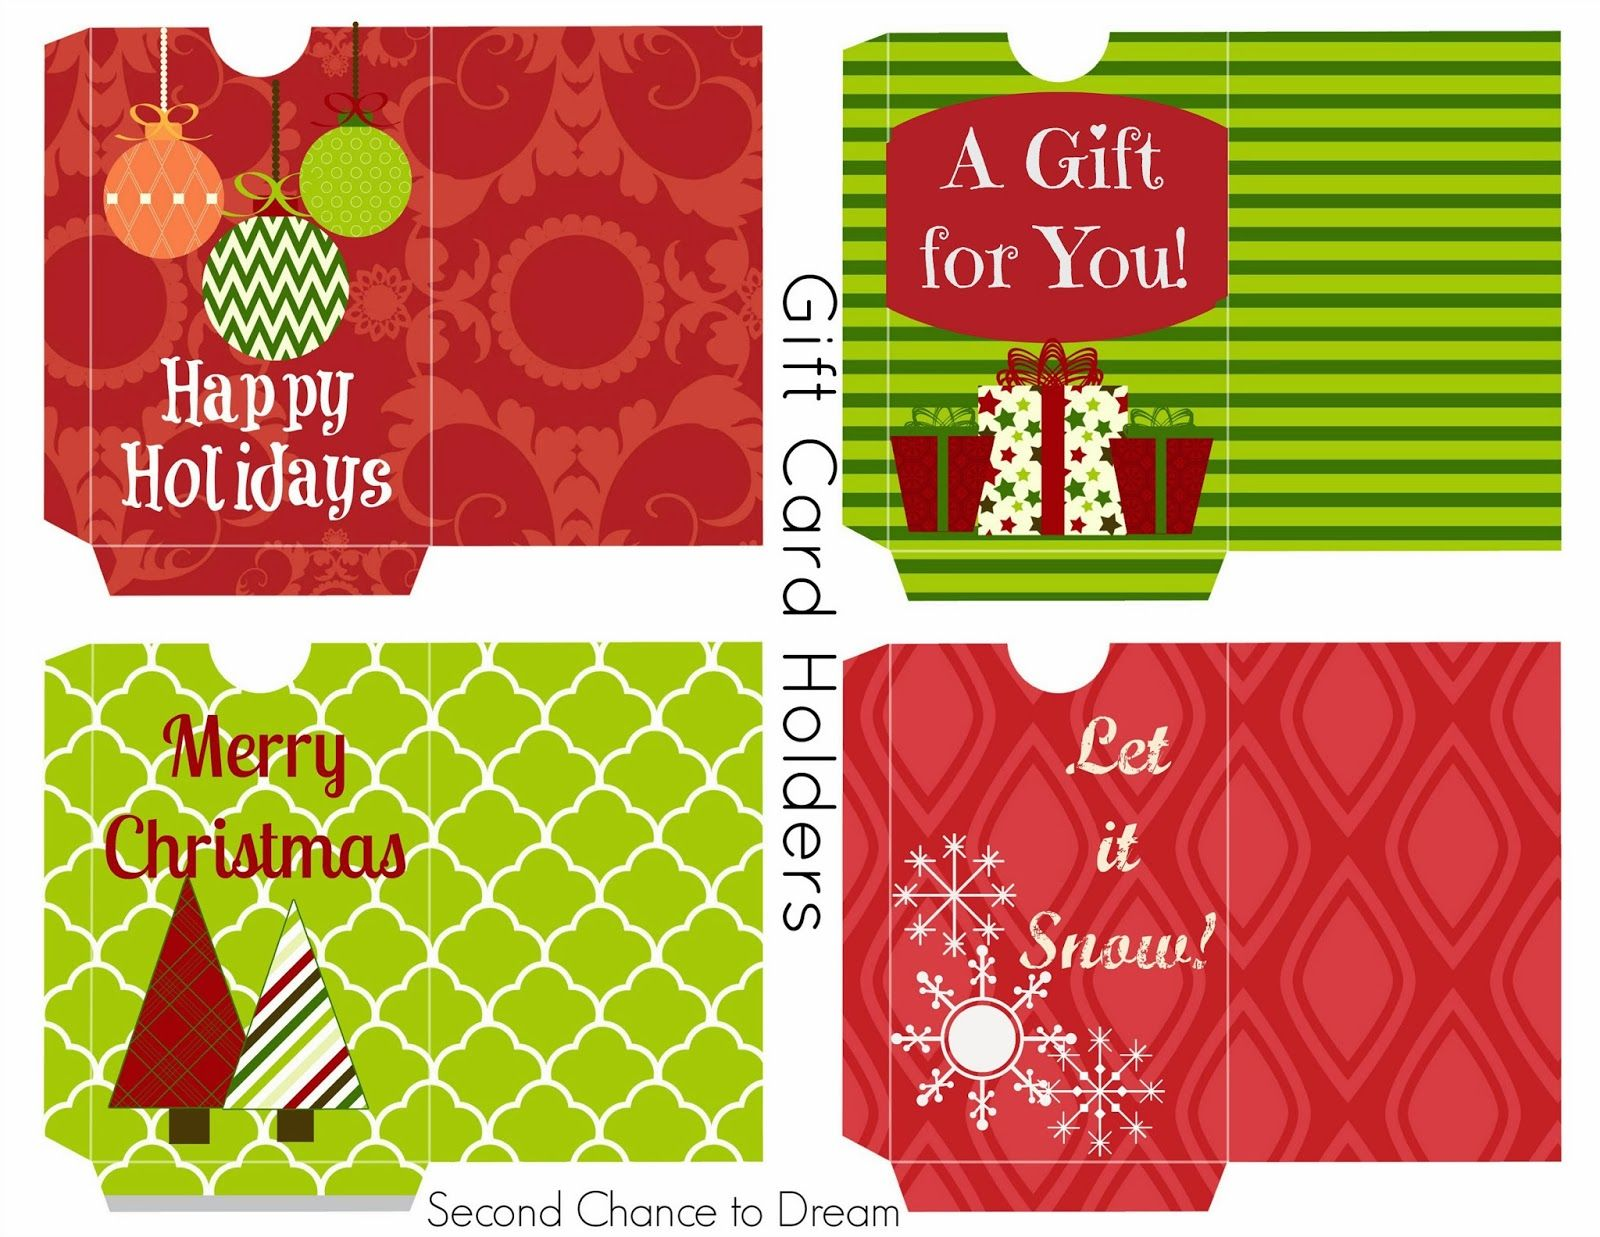 Second Chance To Dream Free Printable Gift Tags Gift Card Holders Gift Card Holder Printable Gift Cards Christmas Gift Card Holders